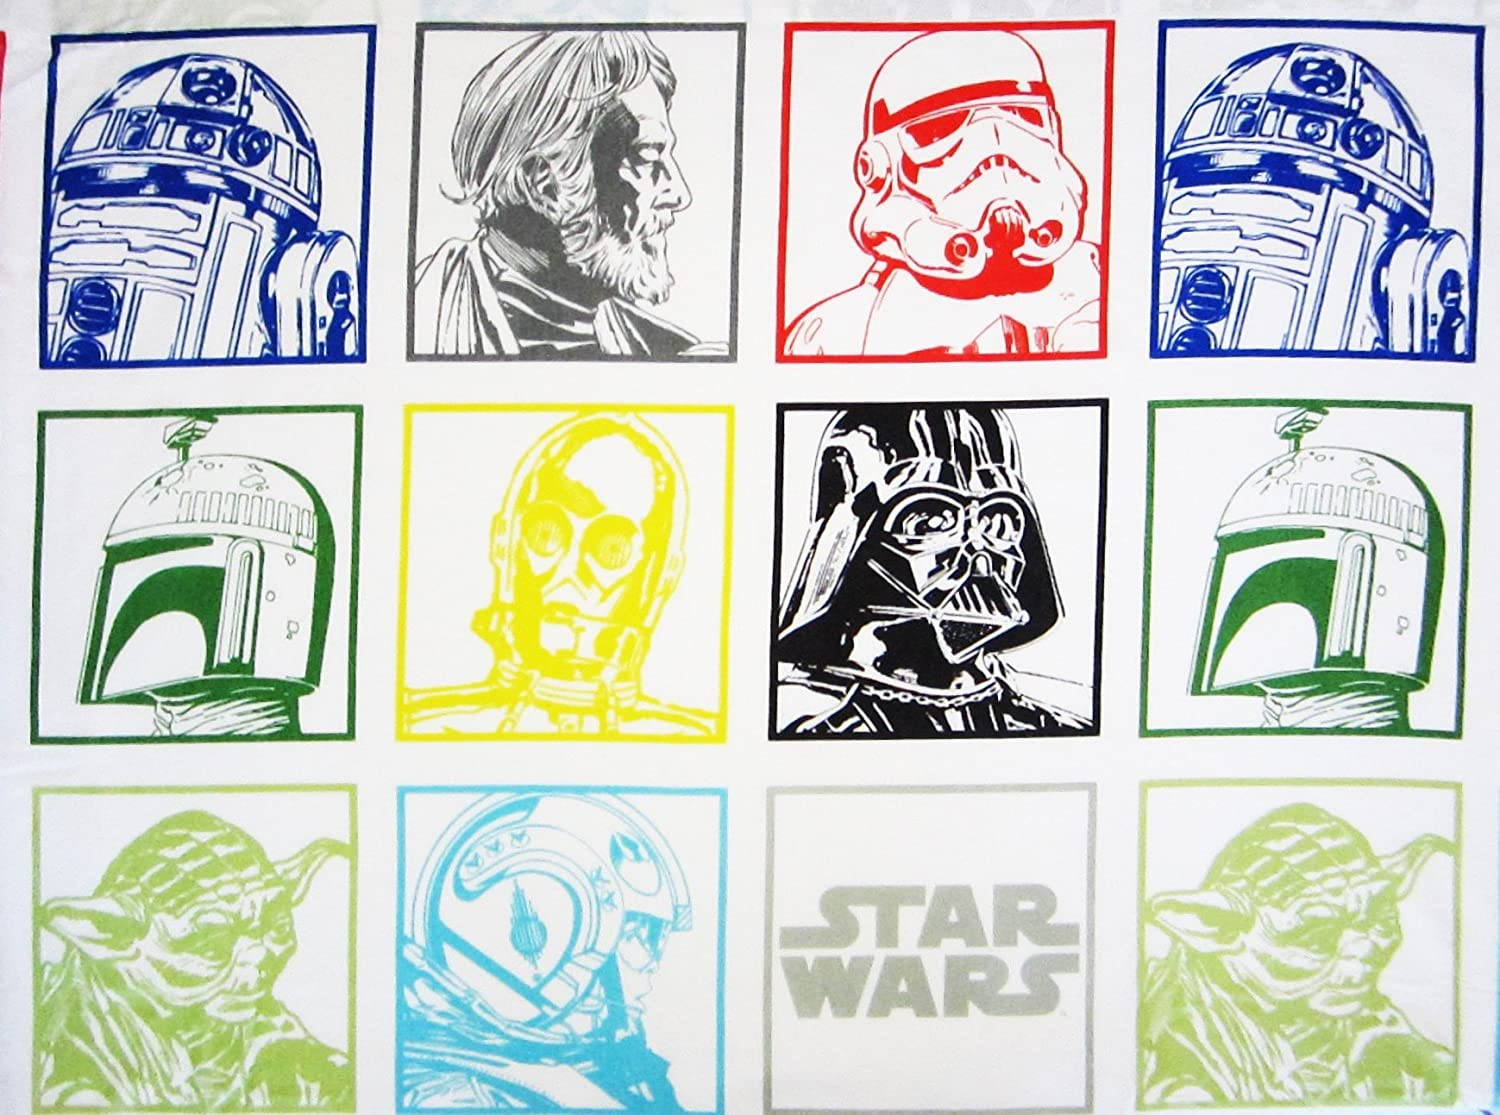 Star Wars Classic 60% Cotton (FLAT SHEET ONLY) Size FULL Boys Girls Kids Bedding Jay Franco & Sons Inc.